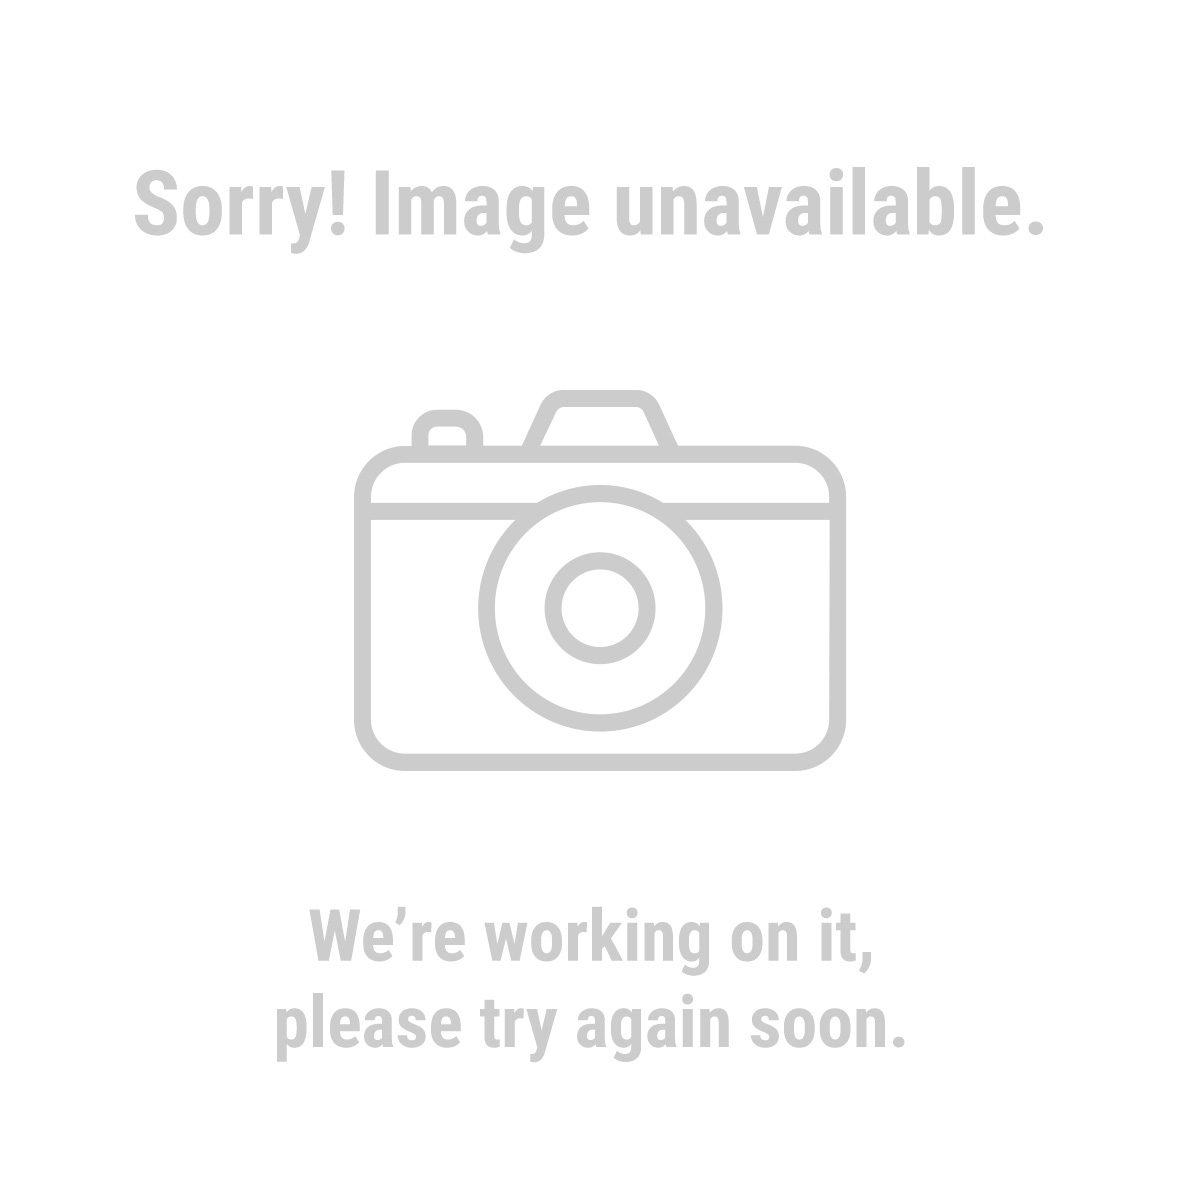 HFT® 69206 28 ft. 10 in. x 39 ft. 4 in. Reflective Heavy Duty Silver Tarp